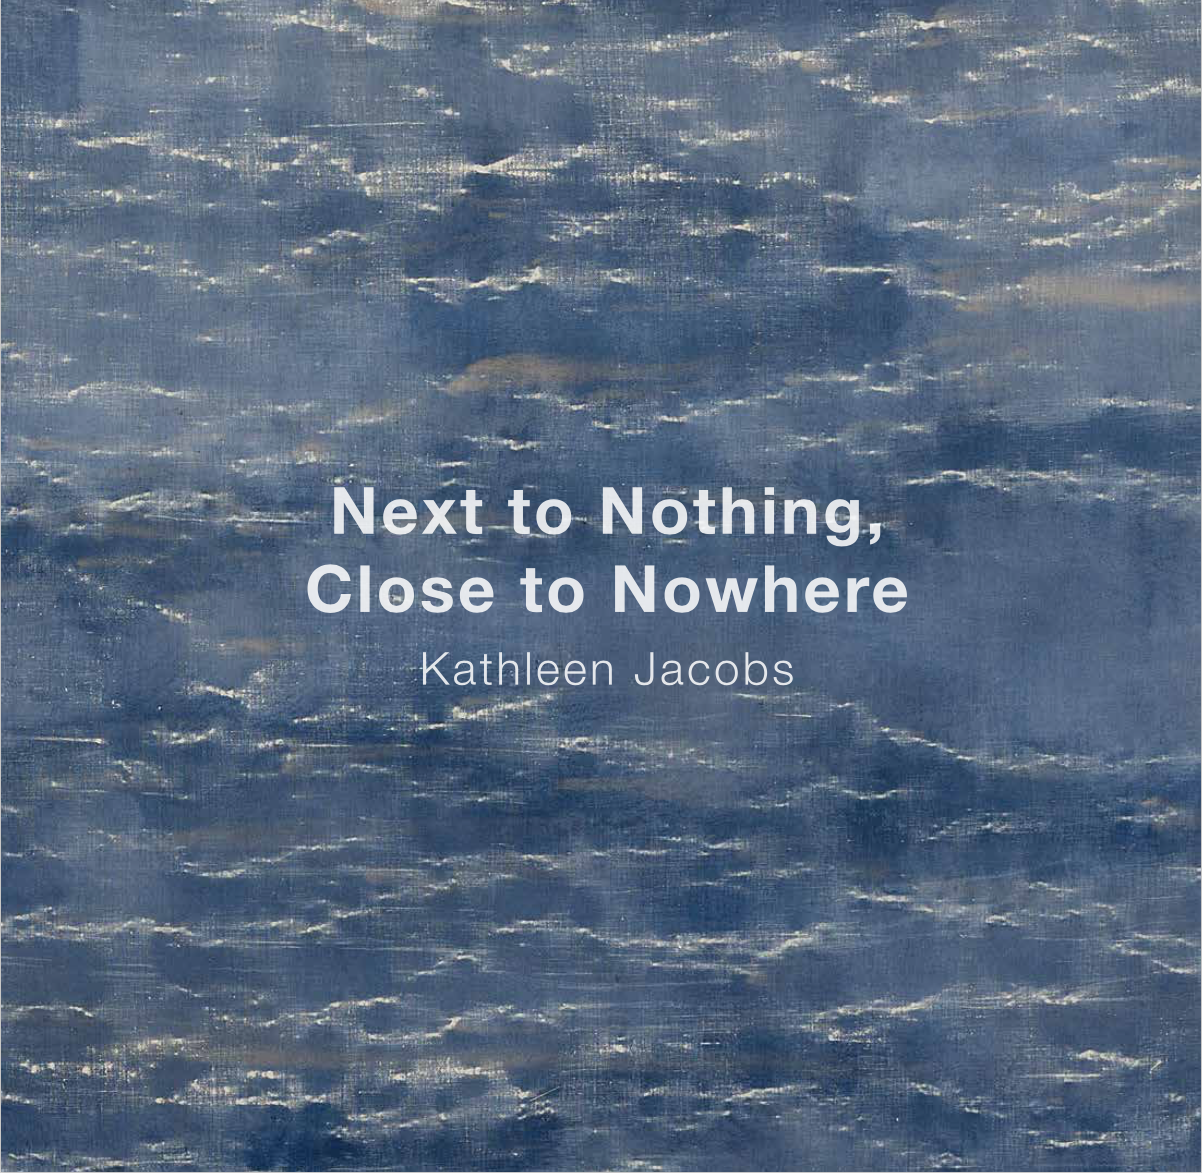 Next to Nothing, Close to Nowhere, Next to Nothing (cover) 2016.png